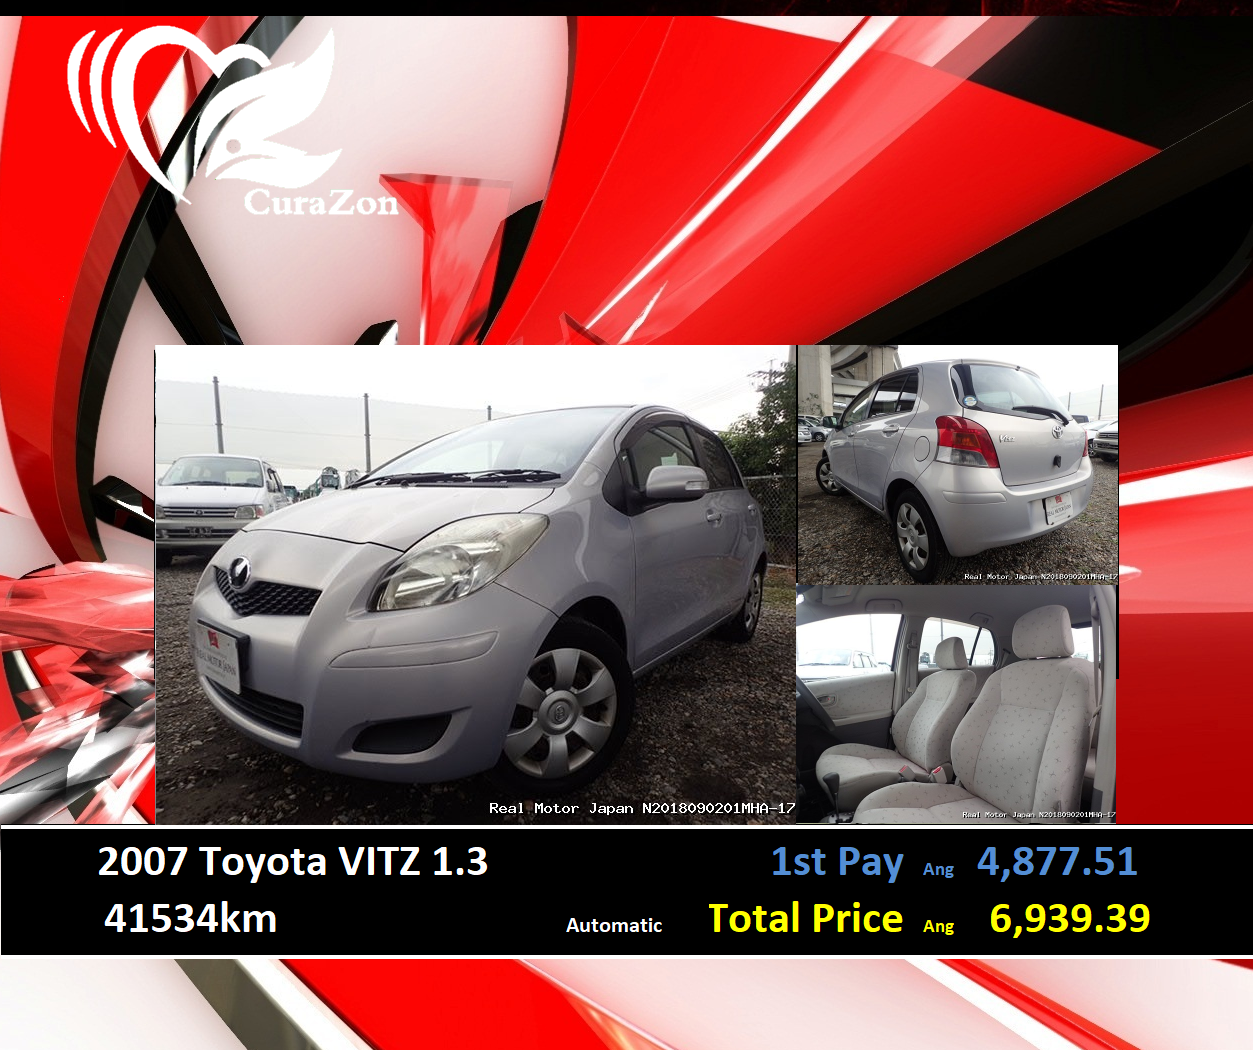 Armoured Vehicles Latin America ⁓ These Real Motor Japan Vitz